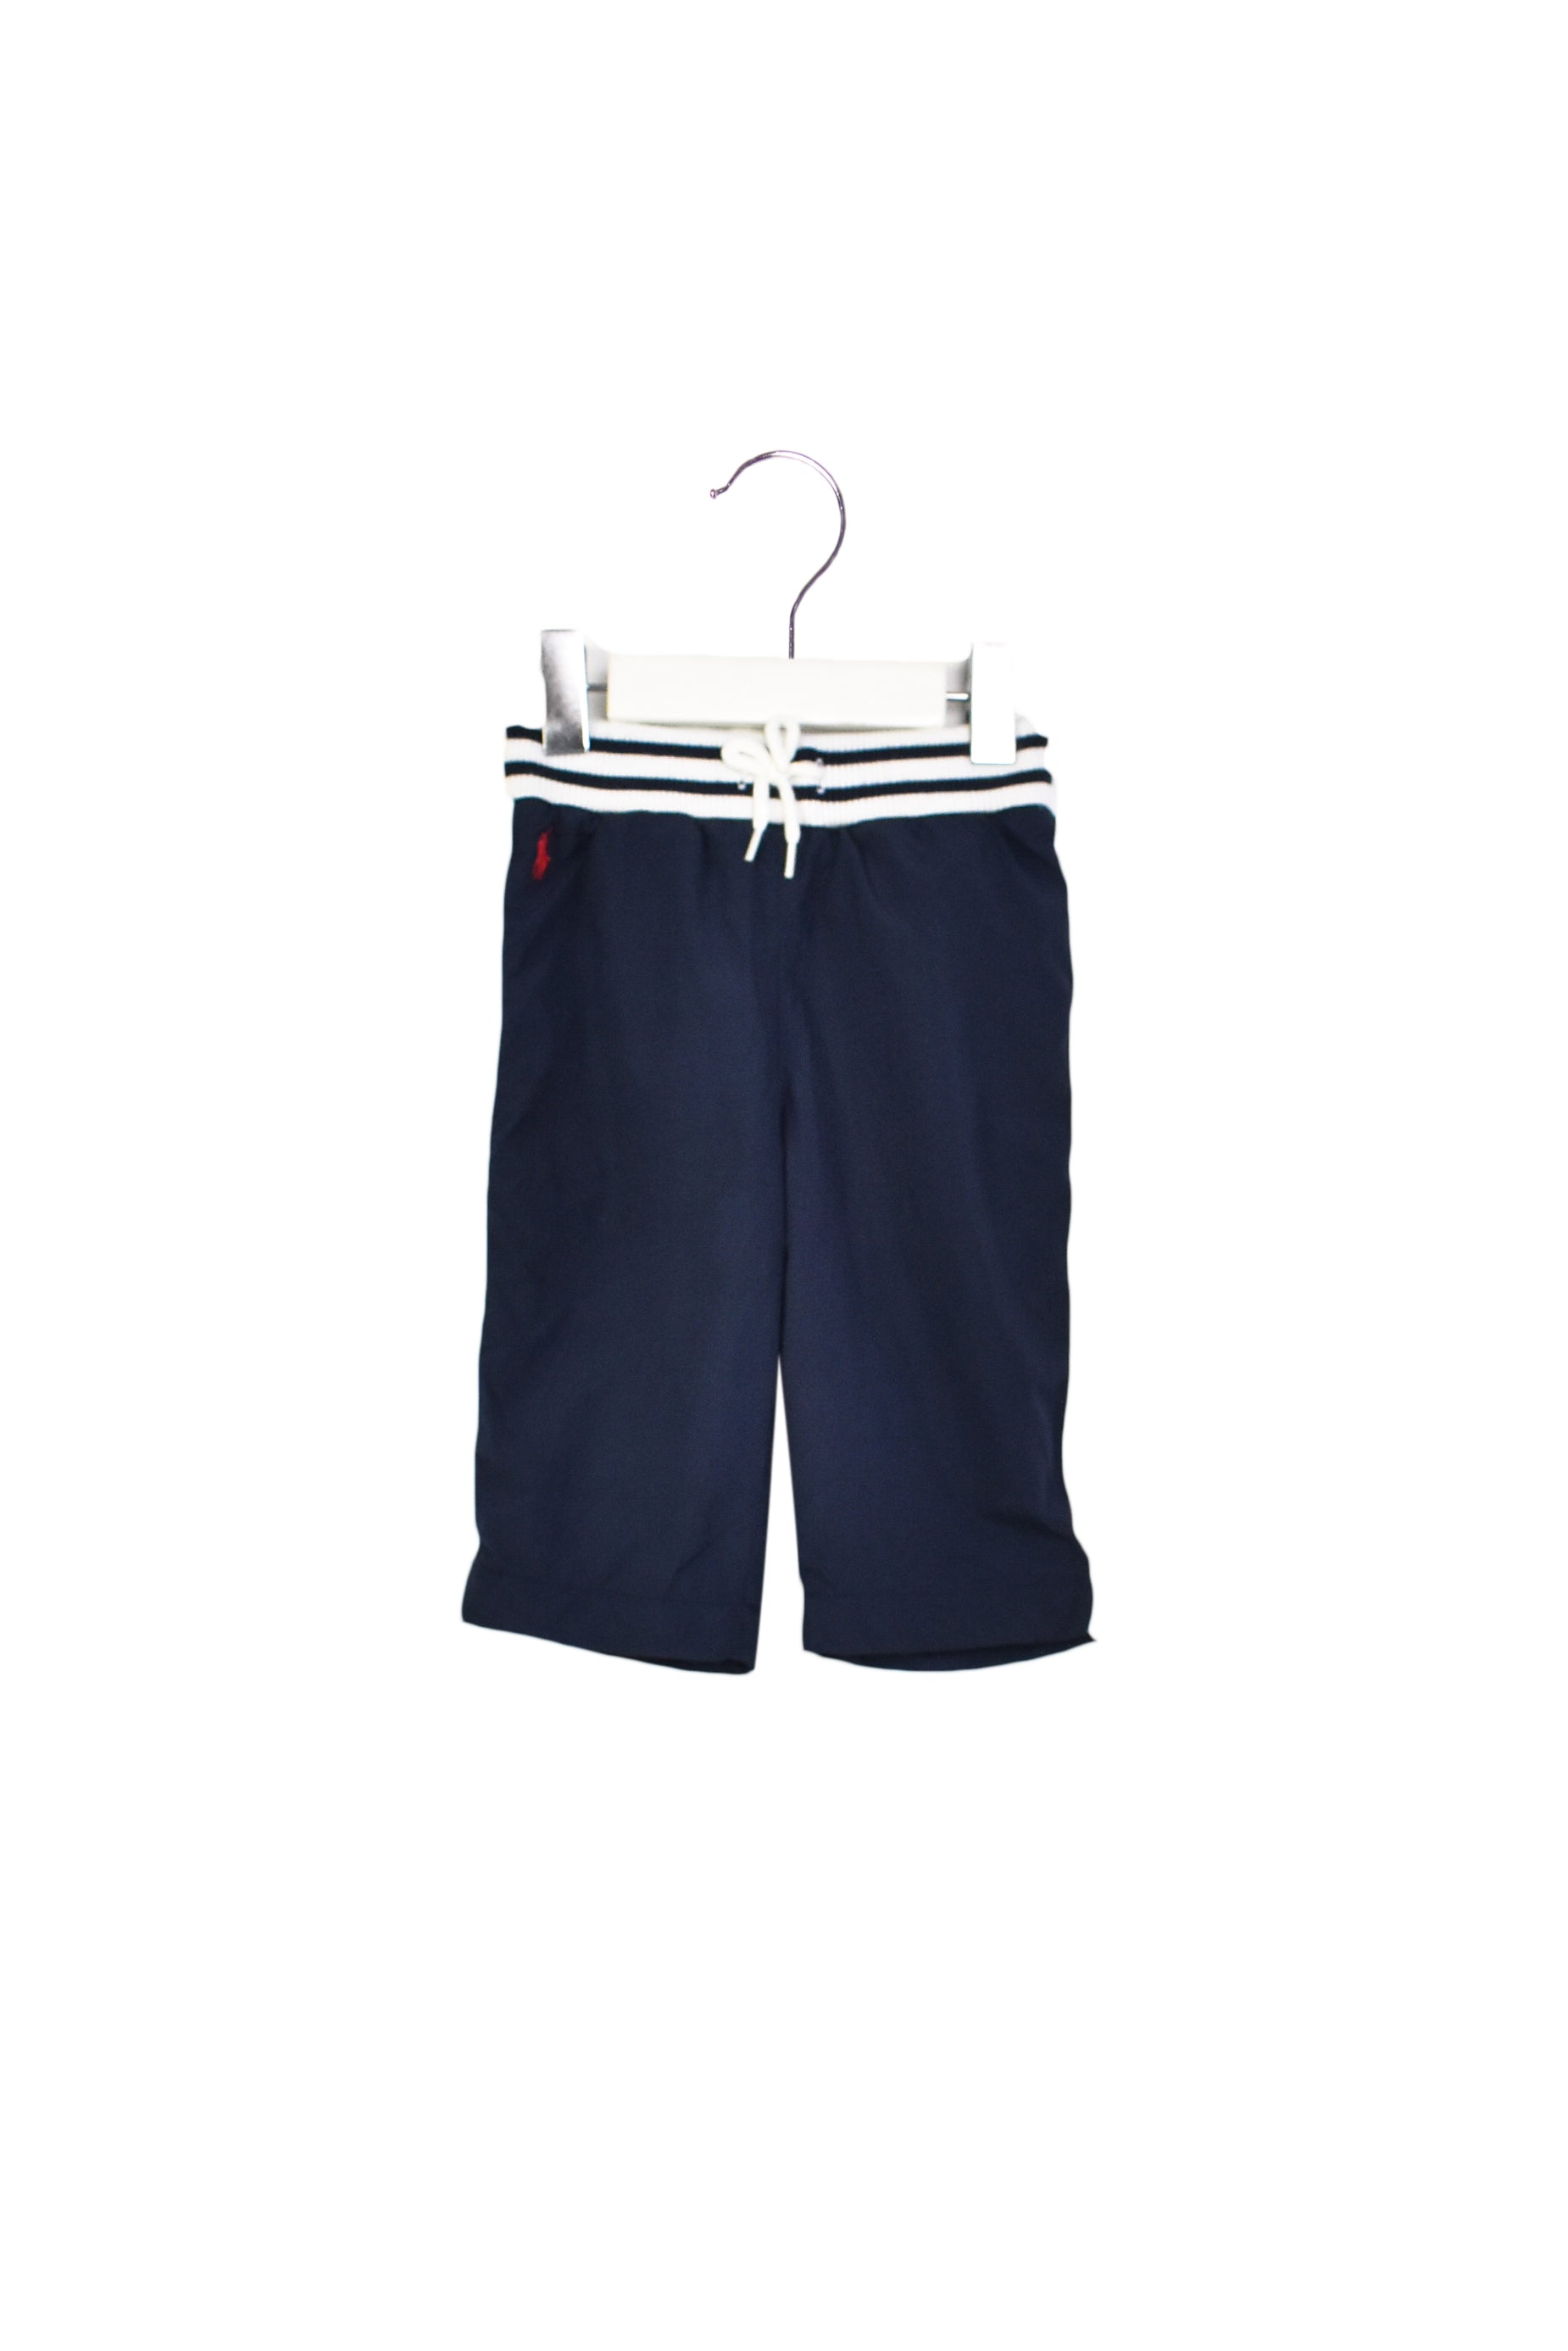 10013239 Ralph Lauren Baby~Pants 6M at Retykle